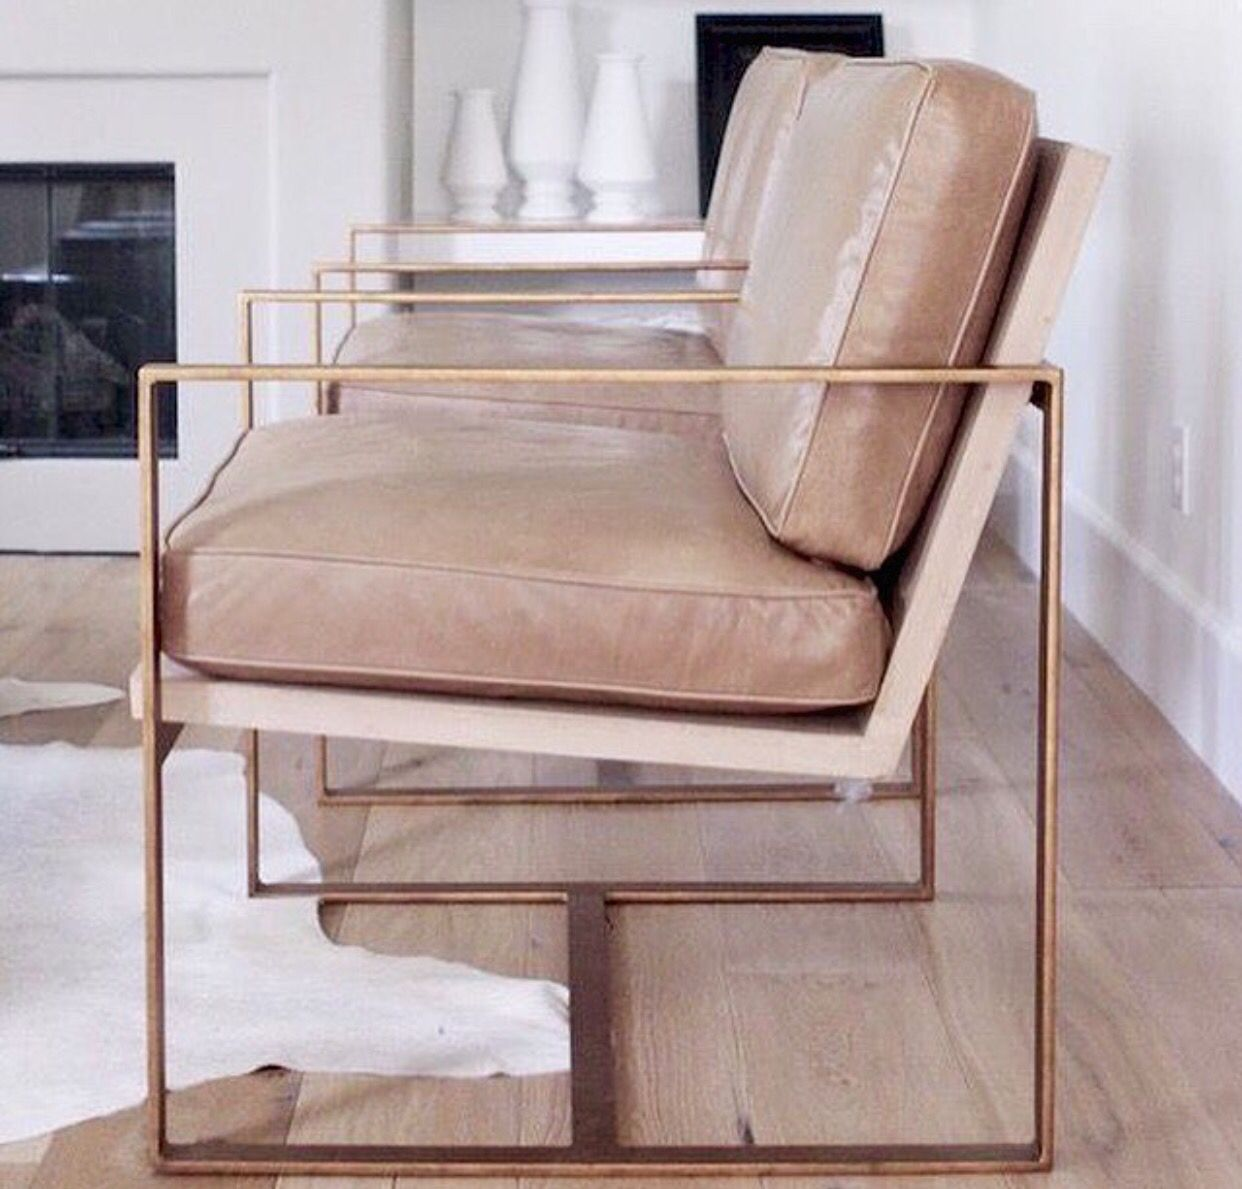 chair goals | pink leather chairs are beyond beautiful | www